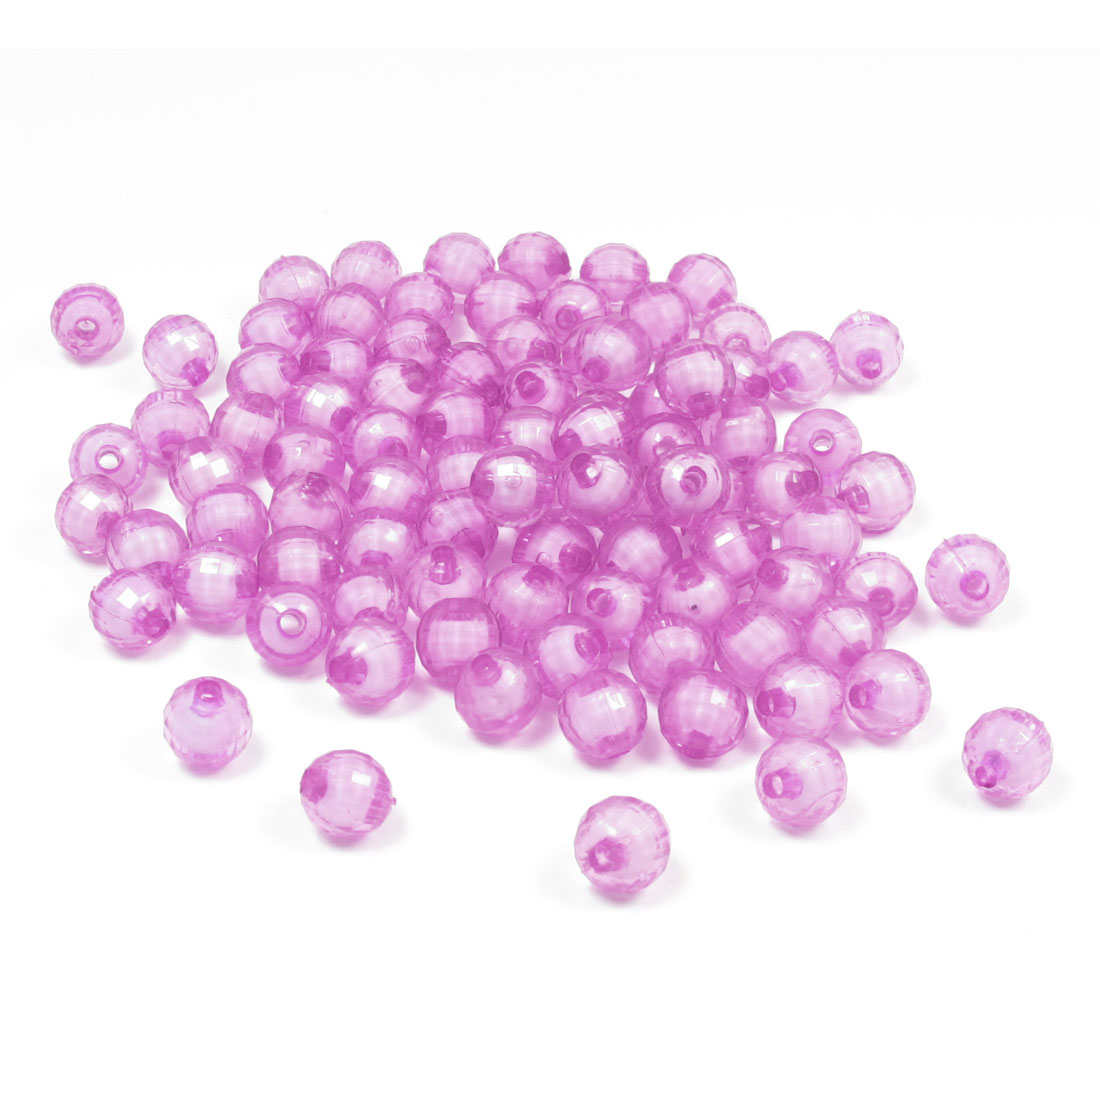 100 Pcs 8mm Fuchsia Plastic Jewelry Findings Crystal Ball Beads